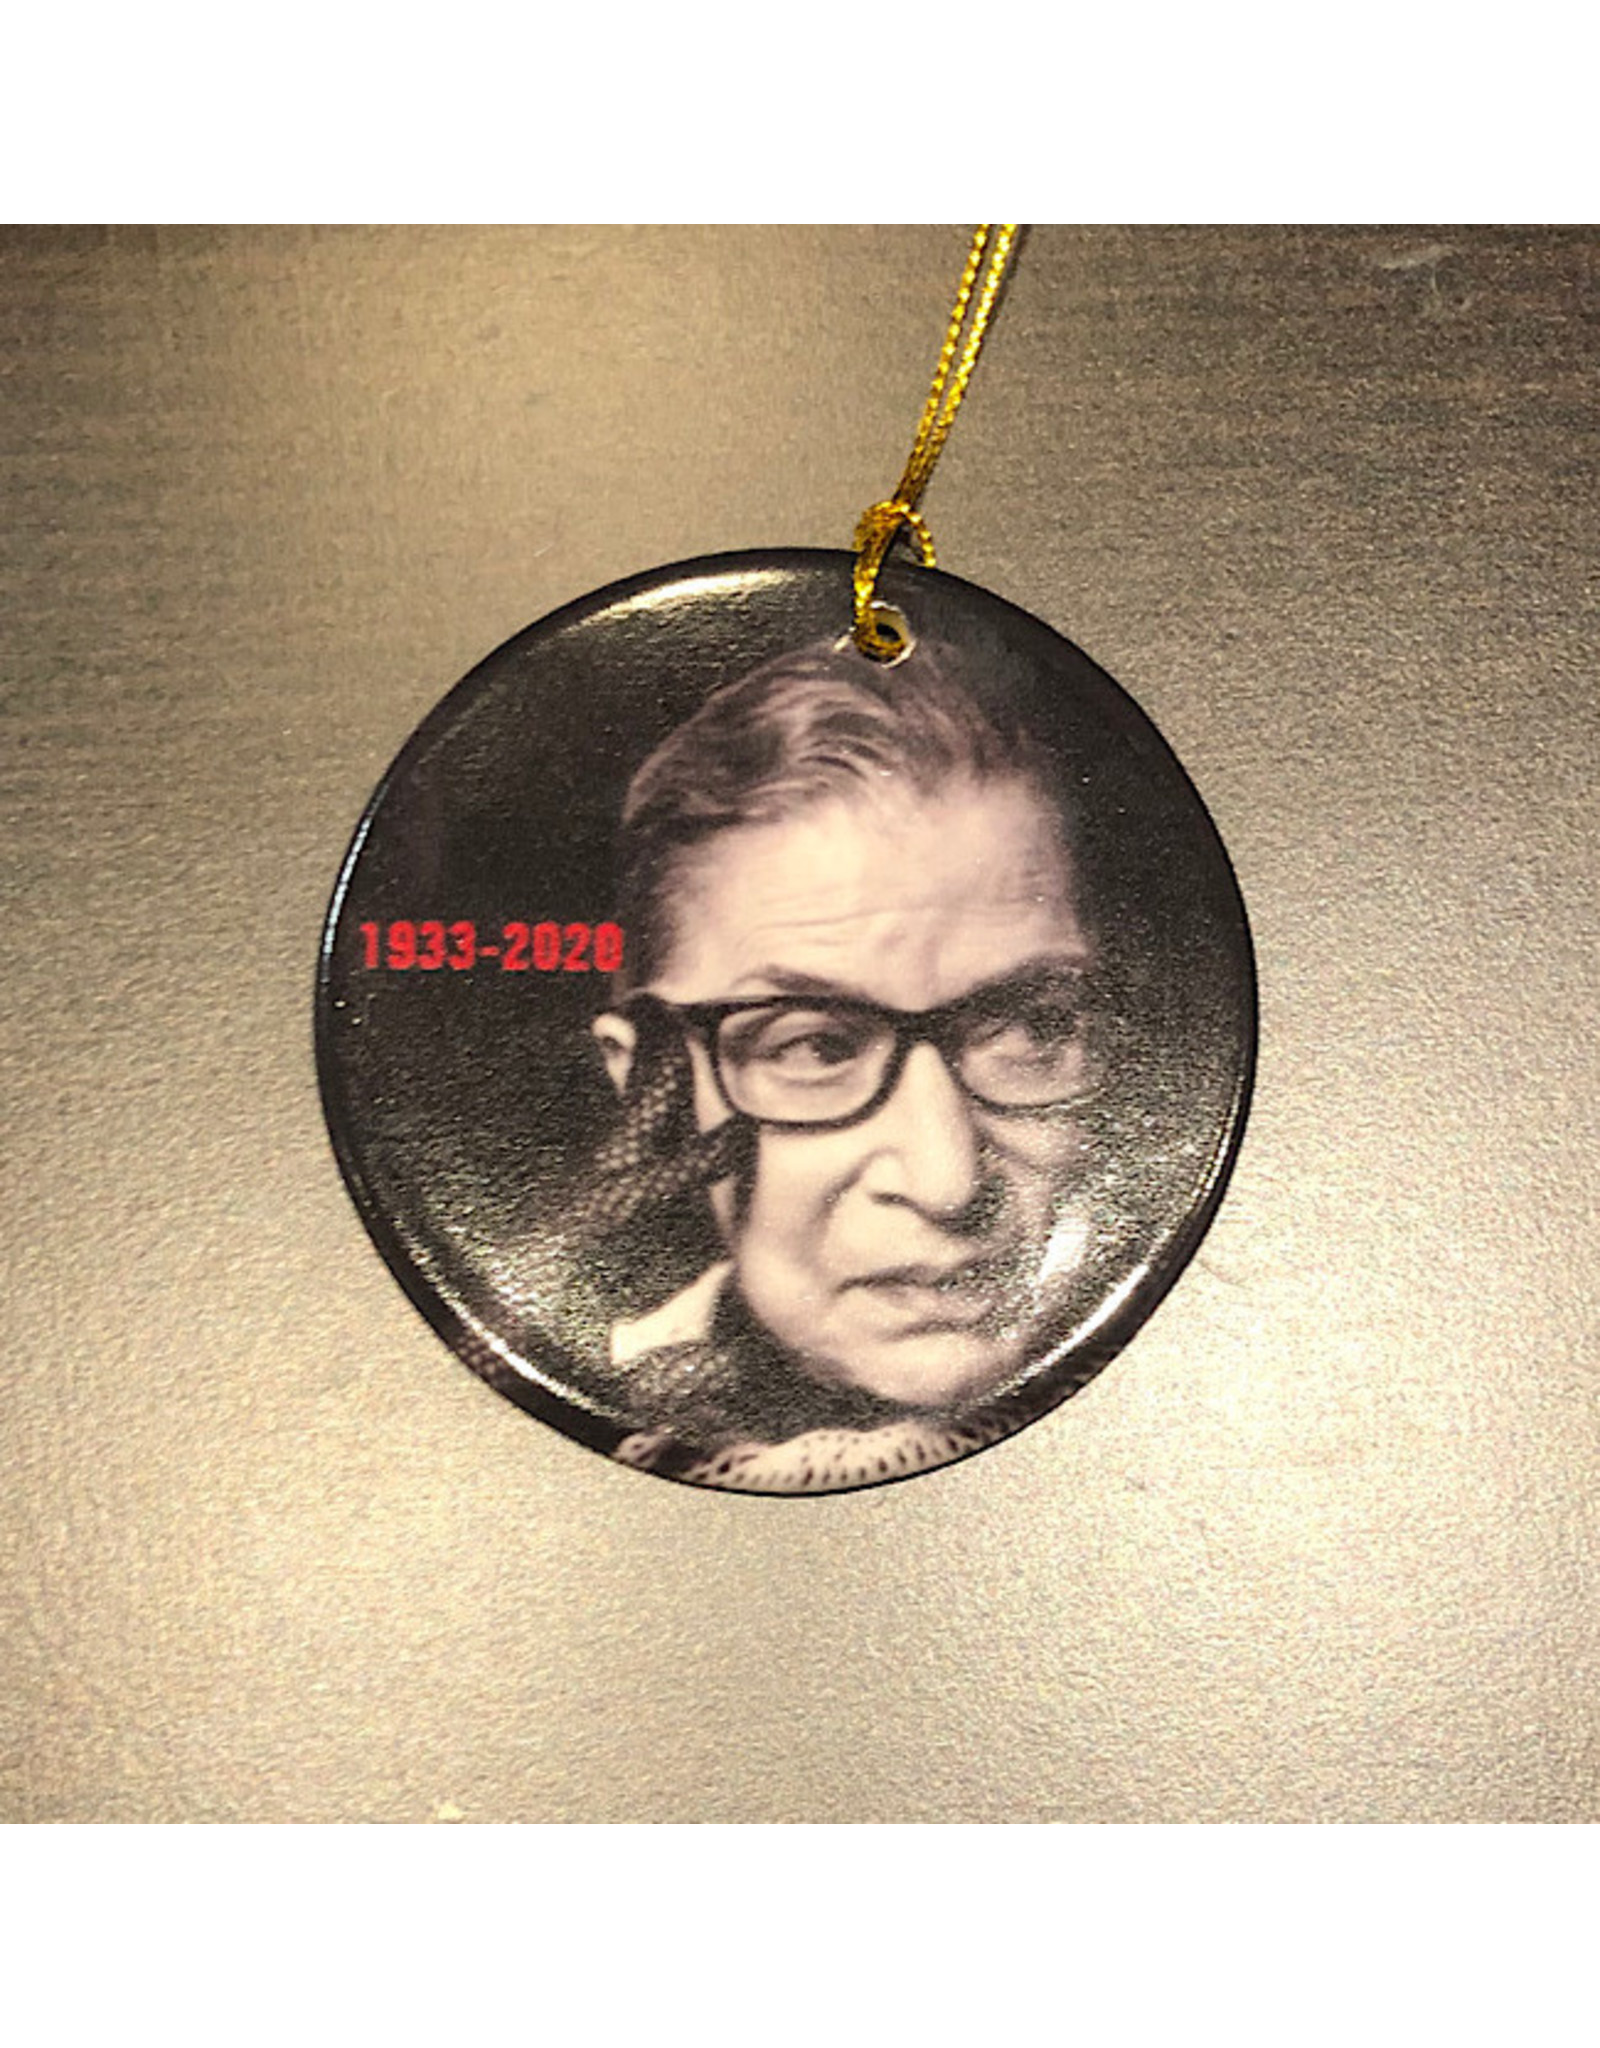 Zazzle Ornament - Ruth Bader Ginsburg (Ceramic)